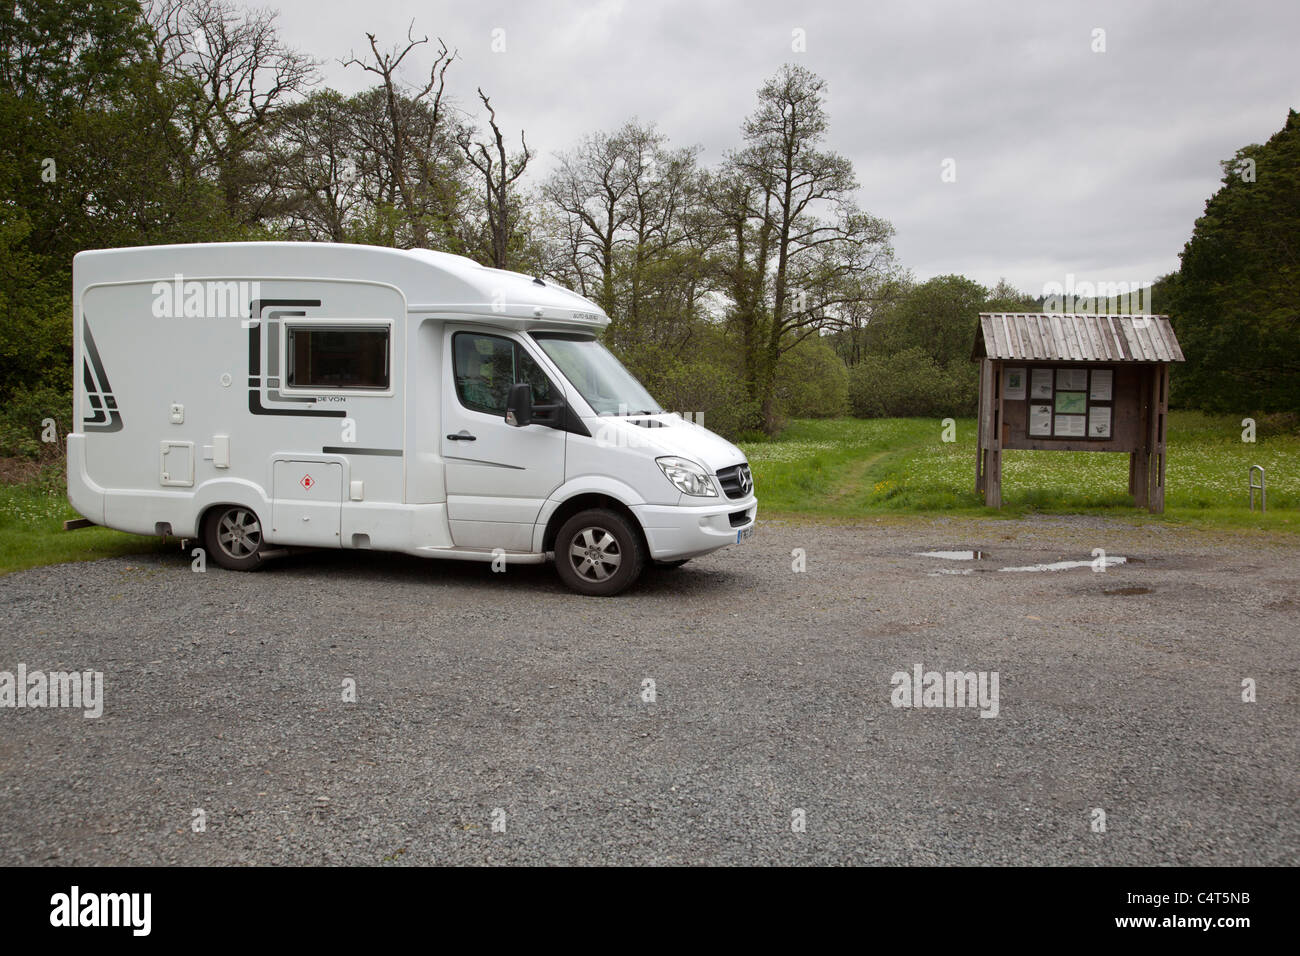 Camper Van parked at Wood of Cree; Dumfries and Galloway; Scotland - Stock Image